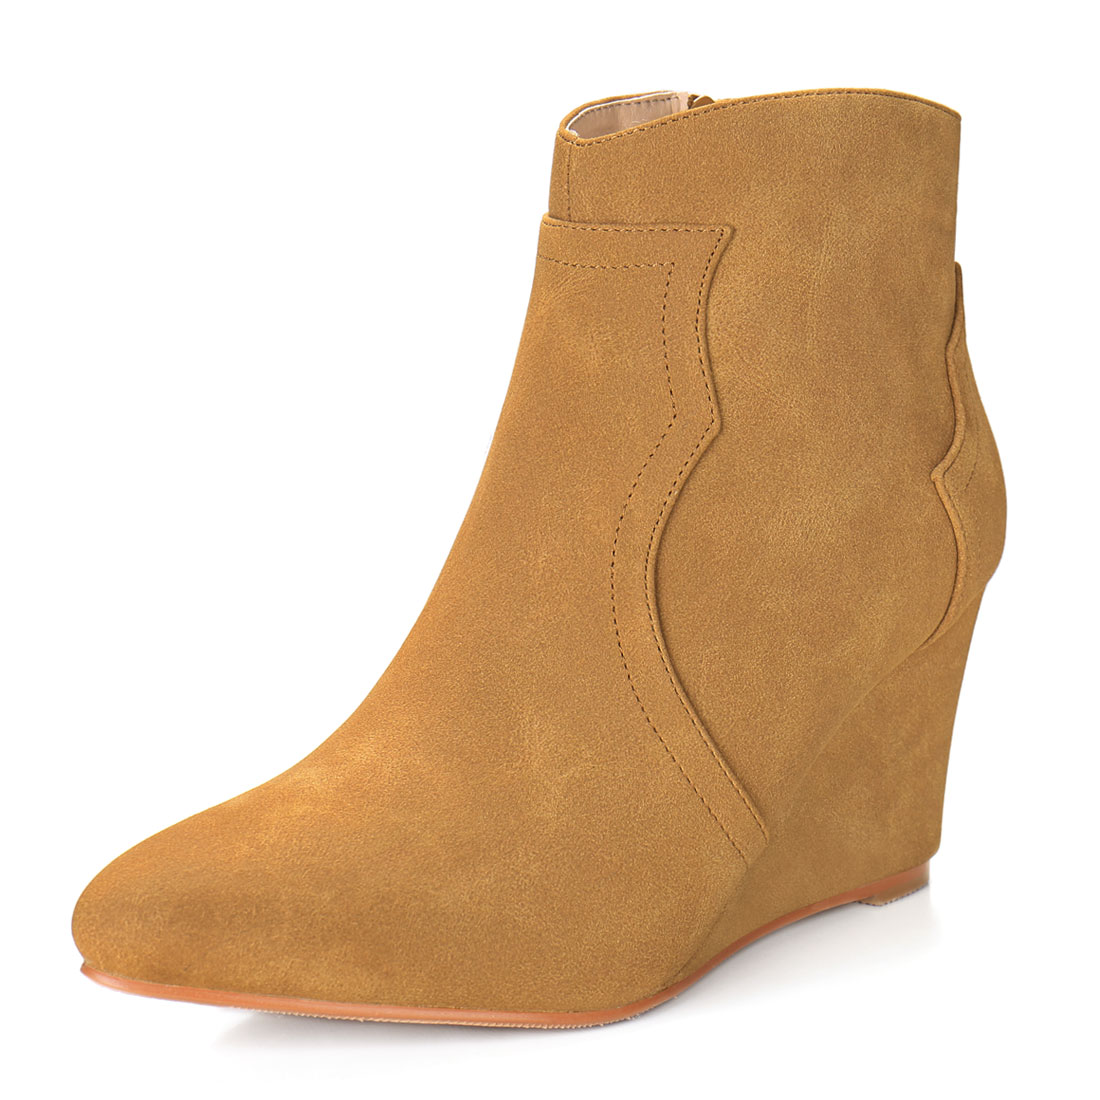 Women Pointed Toe Zipper Wedge Heel Ankle Booties Camel US 10